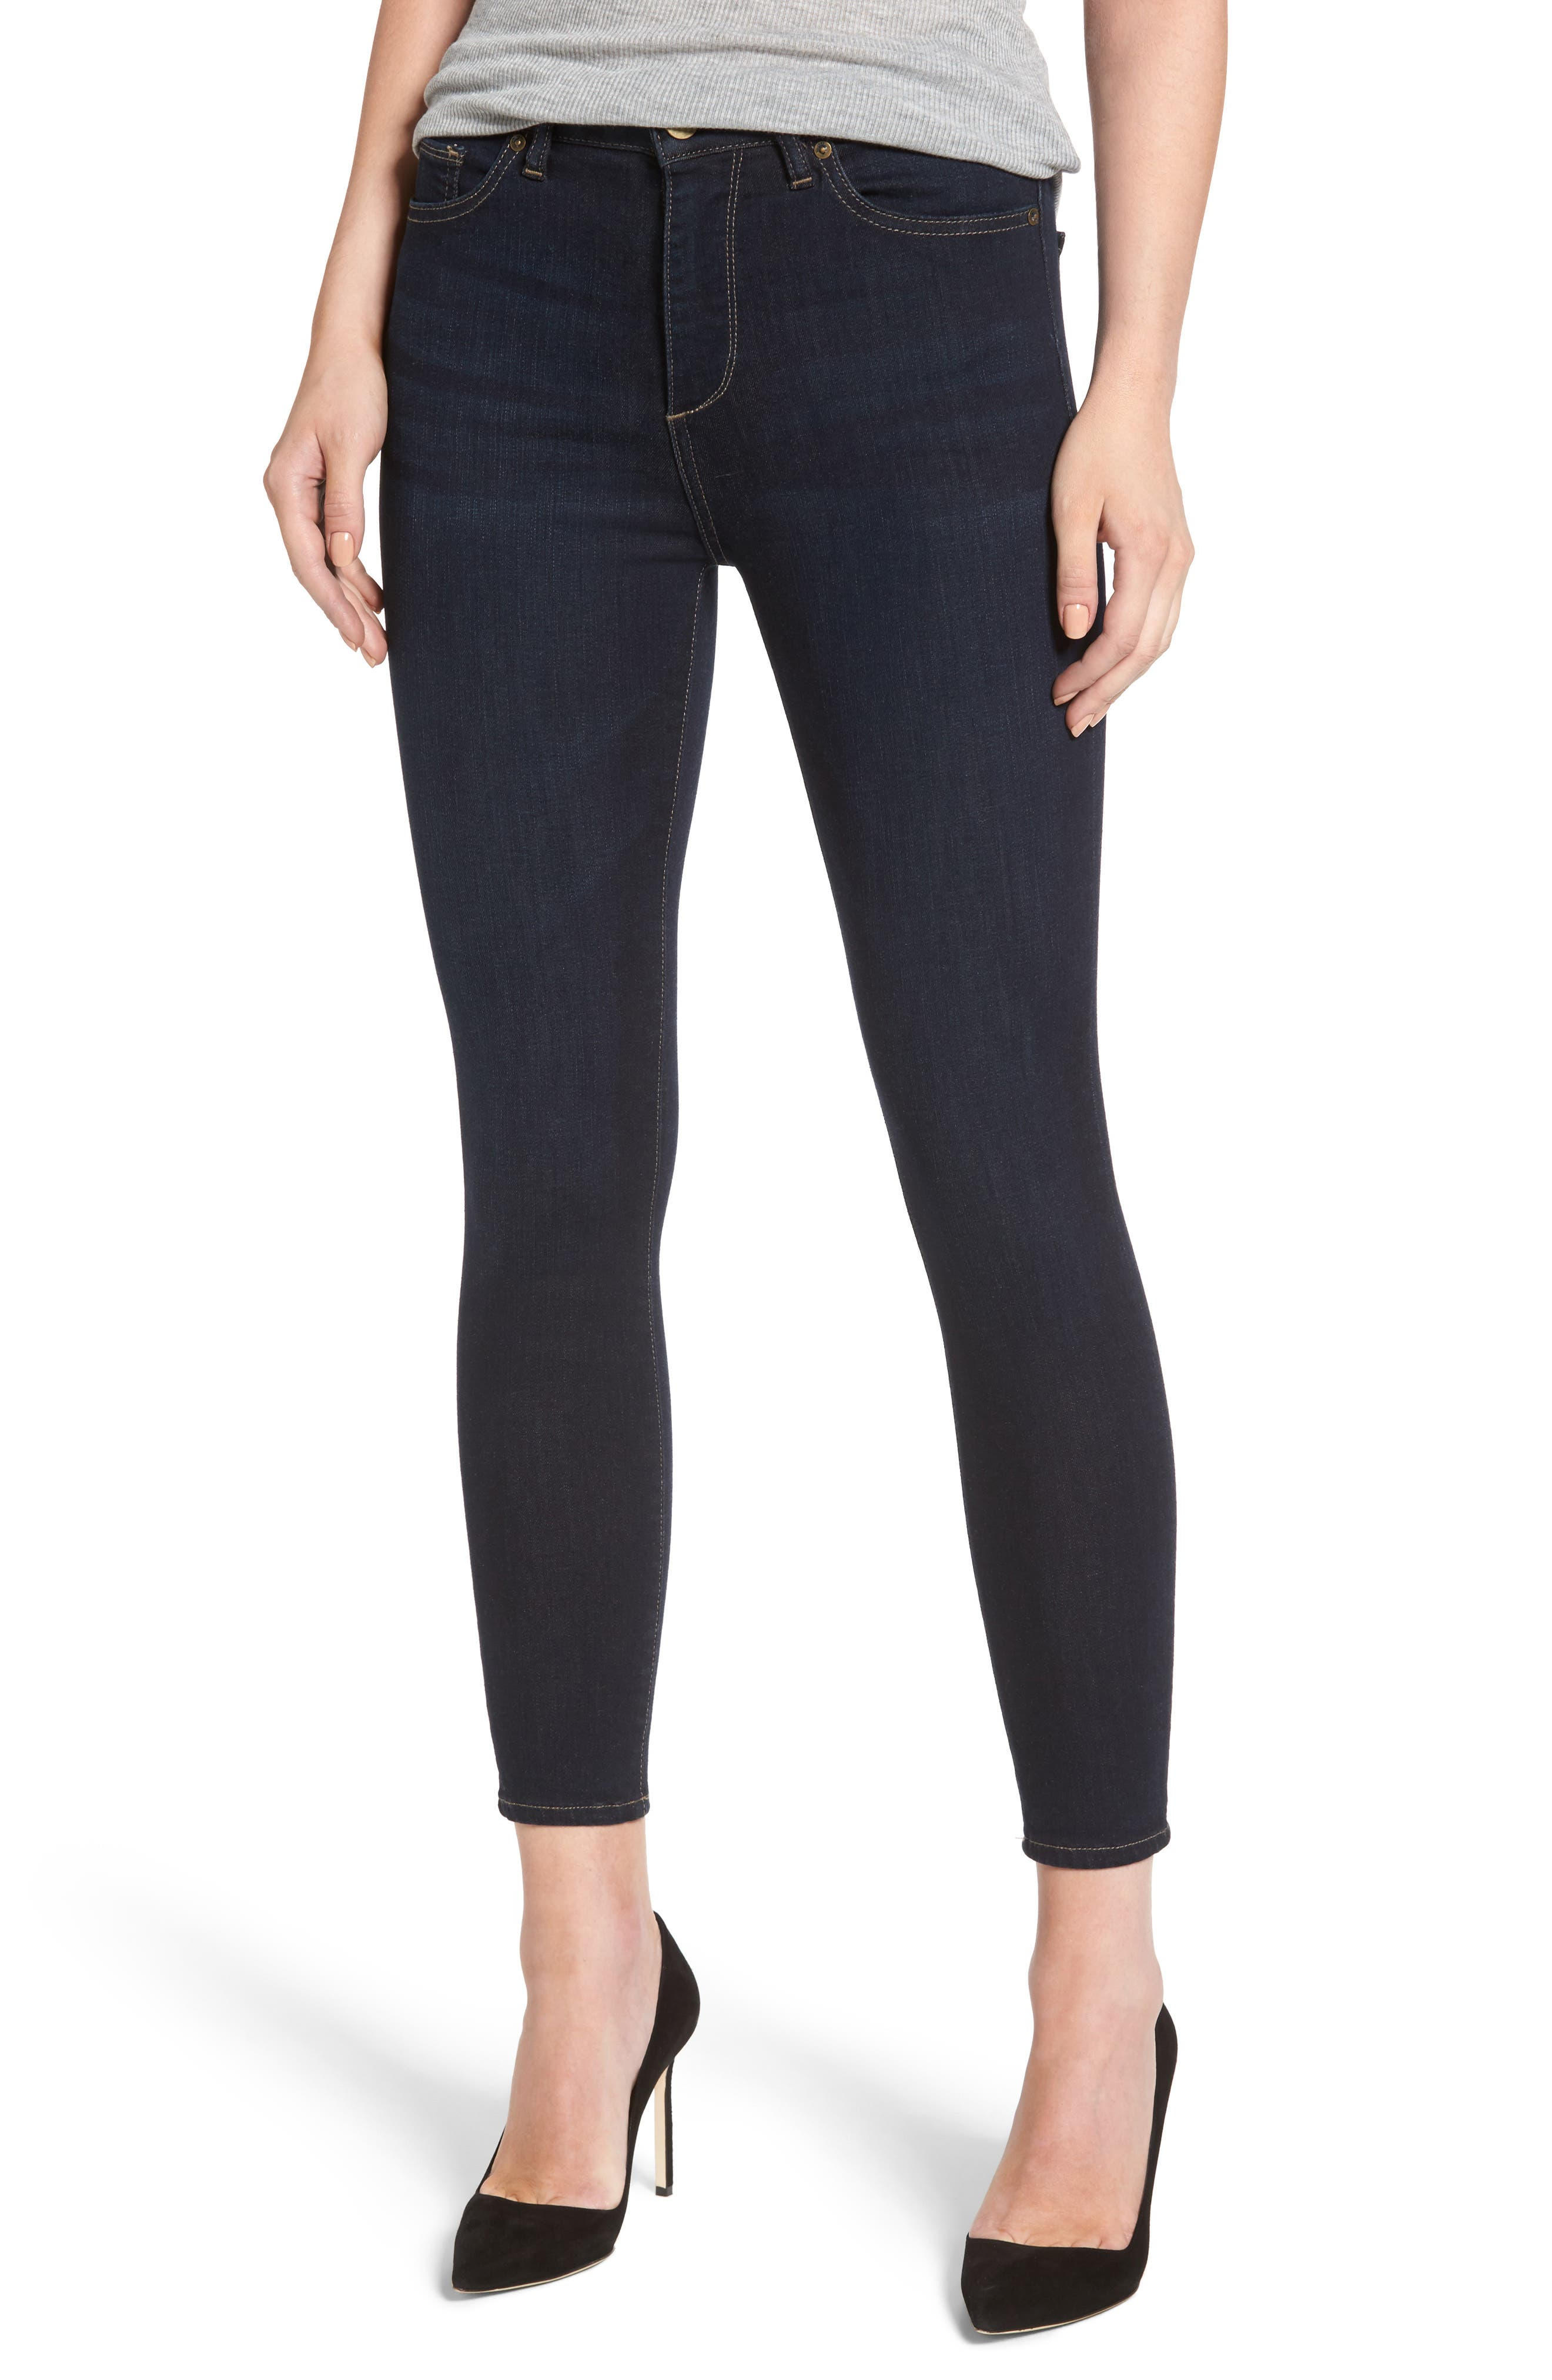 Chrissy High Waist Ankle Skinny Jeans,                         Main,                         color, 405